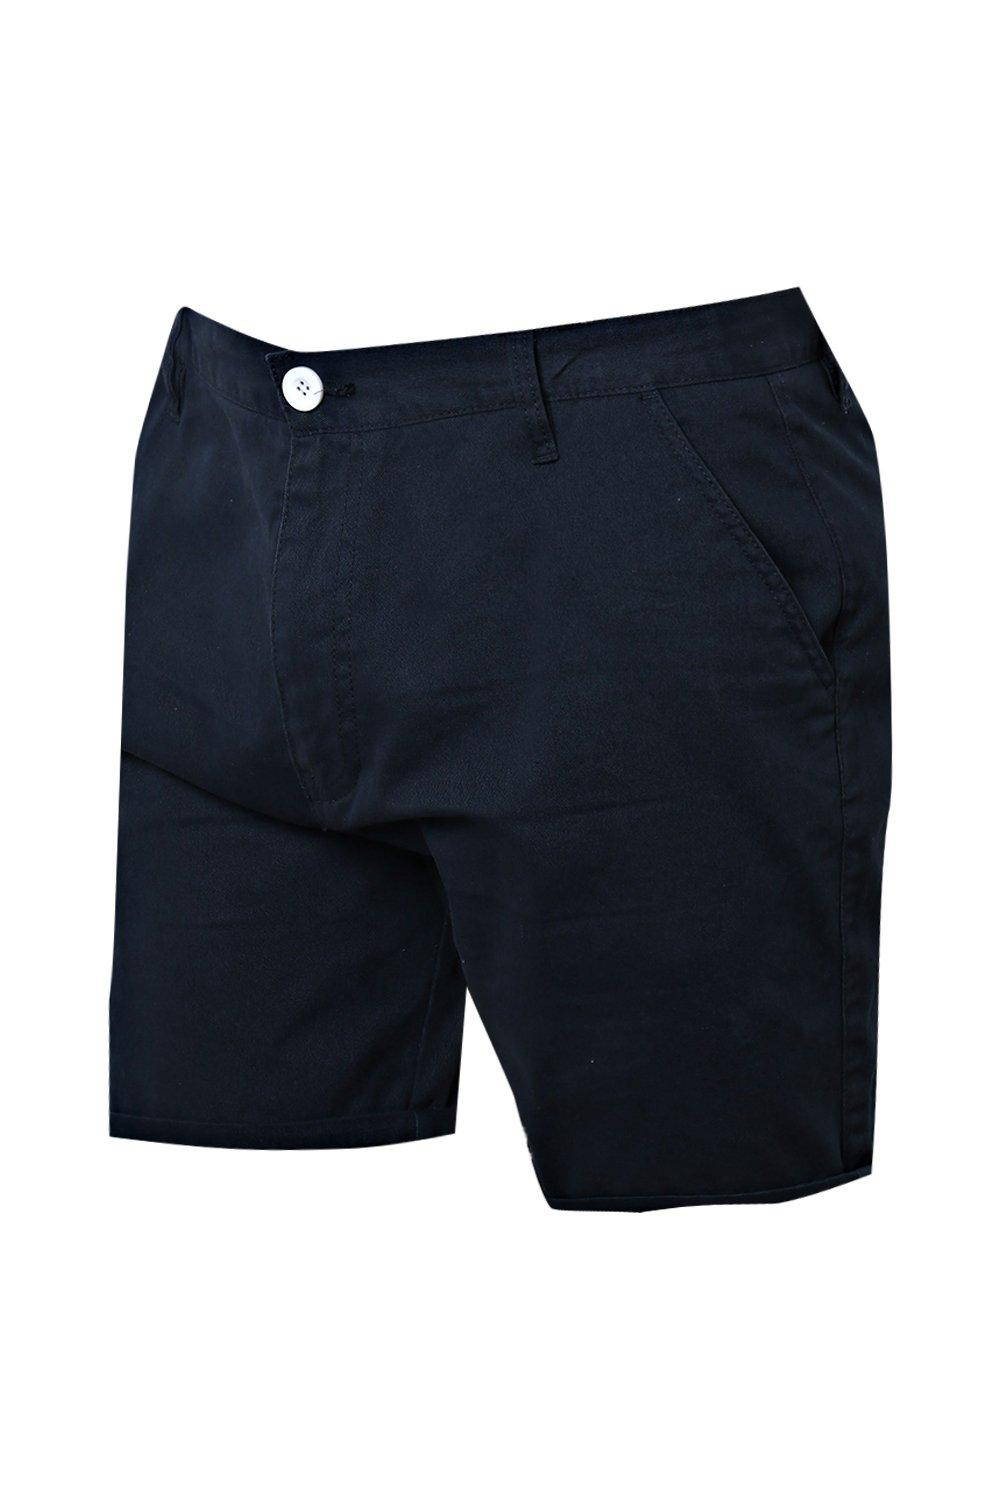 and ajustados tall marino big chinos Azul Pantalones xI6wRt5qI